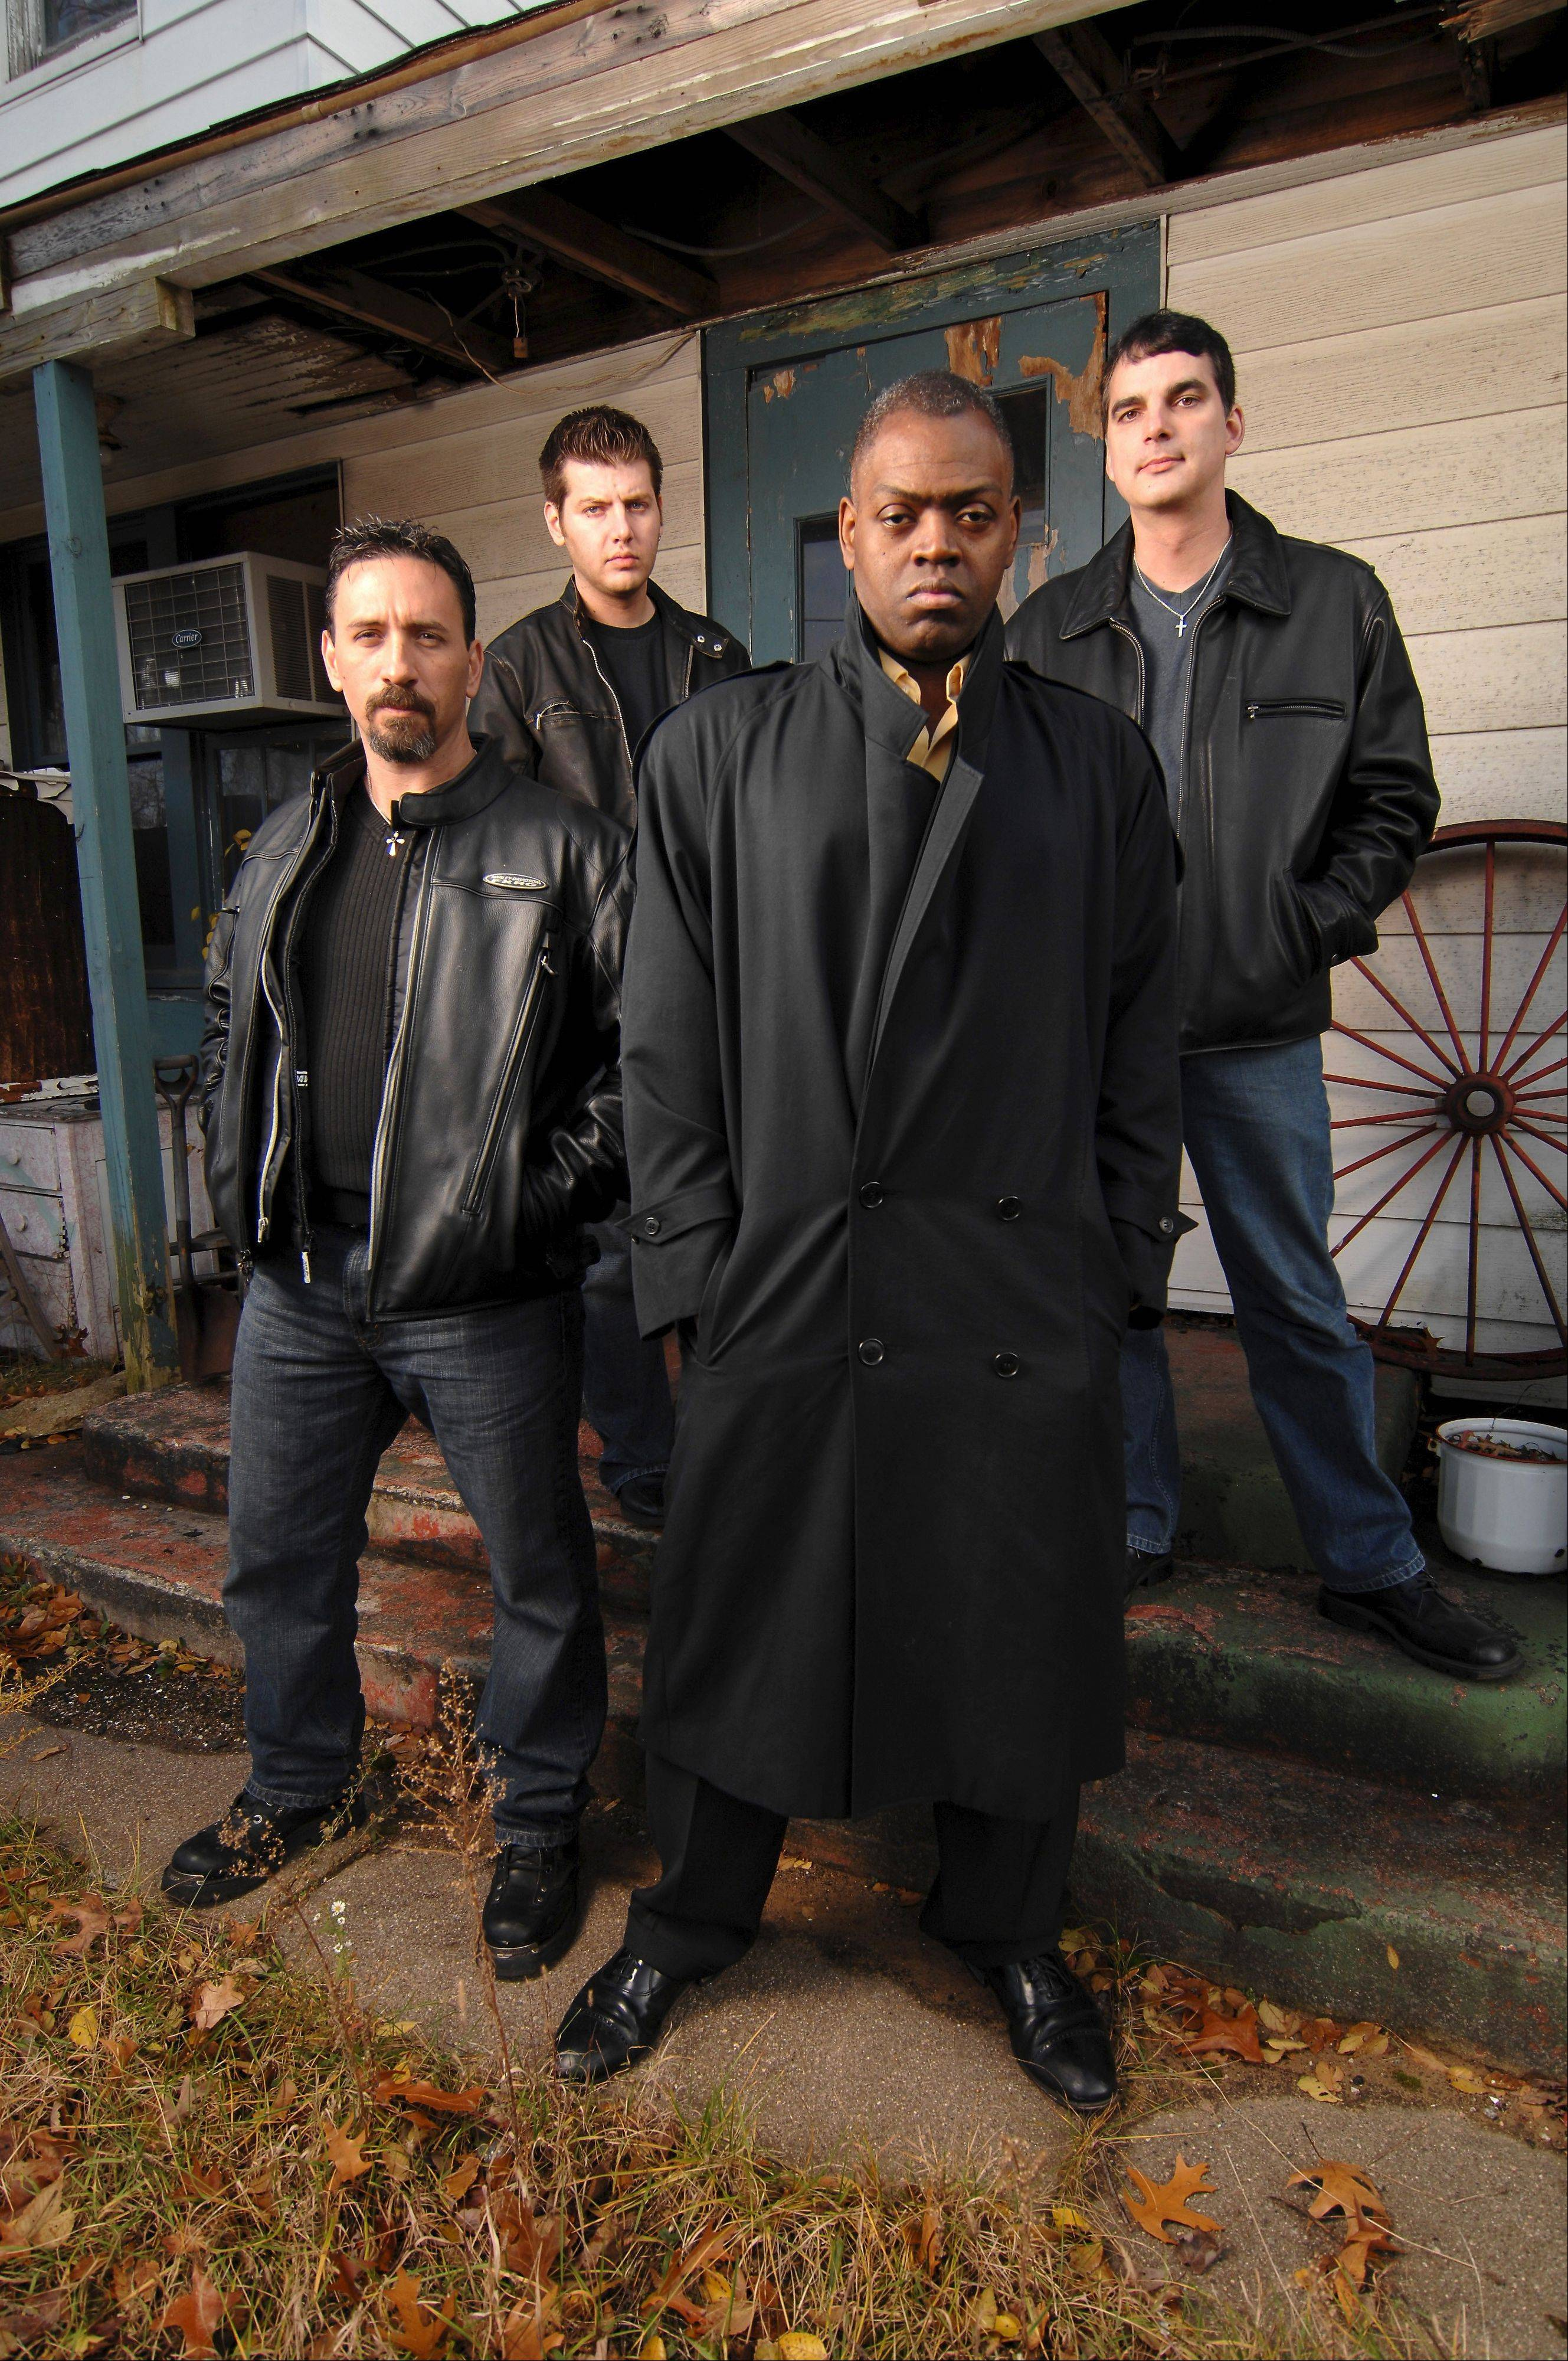 The blues/rock/funk band Howard and the White Boys plays Friday, Feb. 1, at Lincolnshire's Viper Alley.